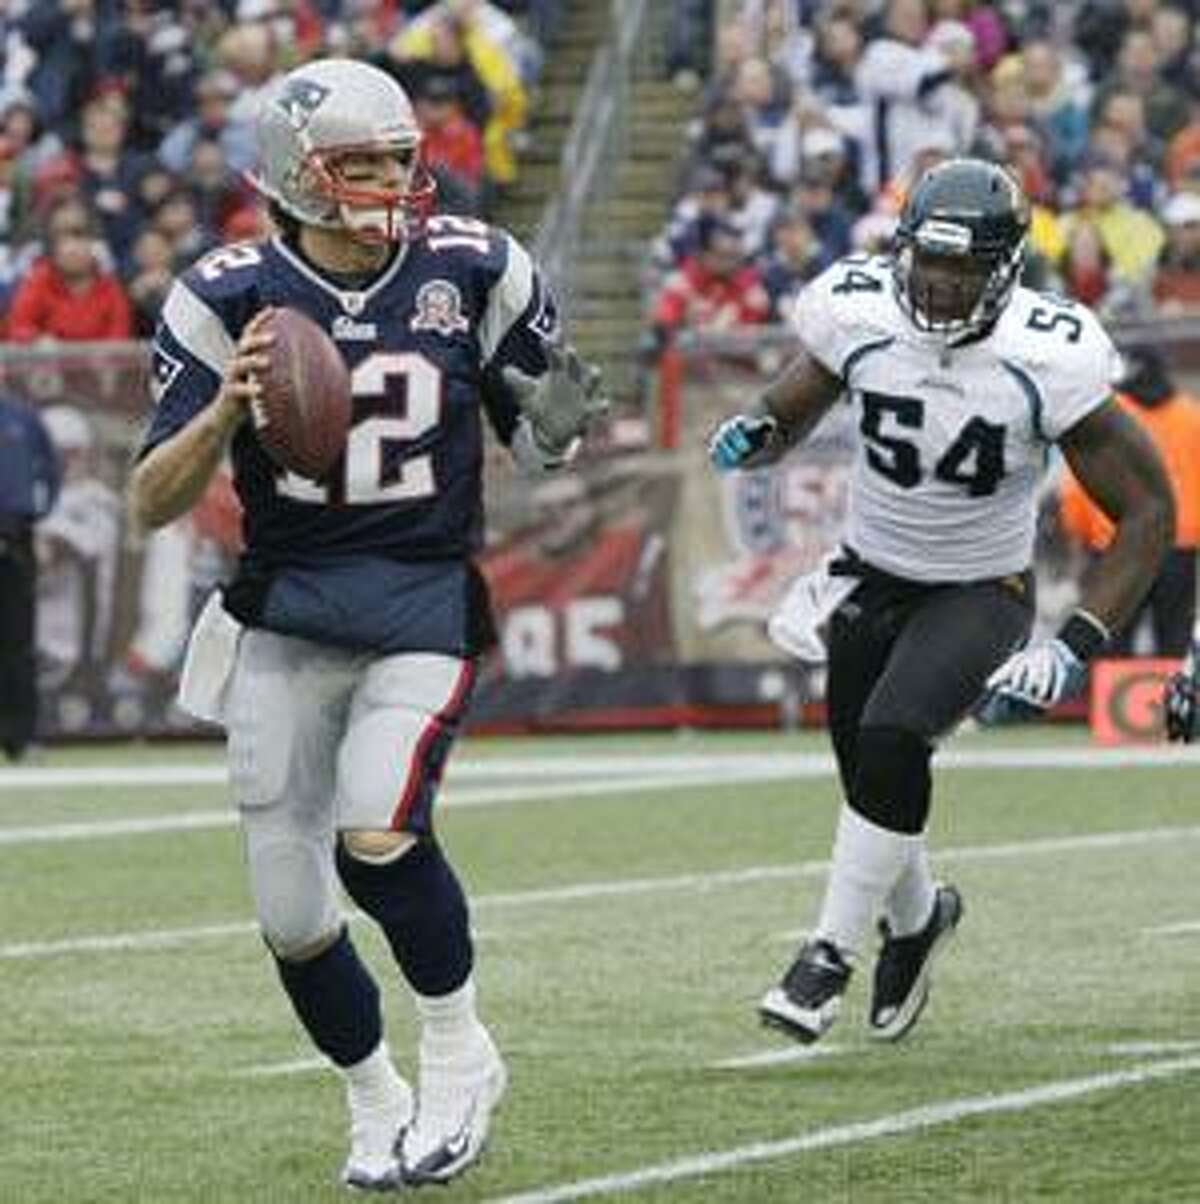 New England Patriots quarterback Tom Brady (12) looks for a receiver as Jacksonville Jaguars defensive end Quentin Groves (54) closes in during the first half Sunday in Foxboro, Mass.